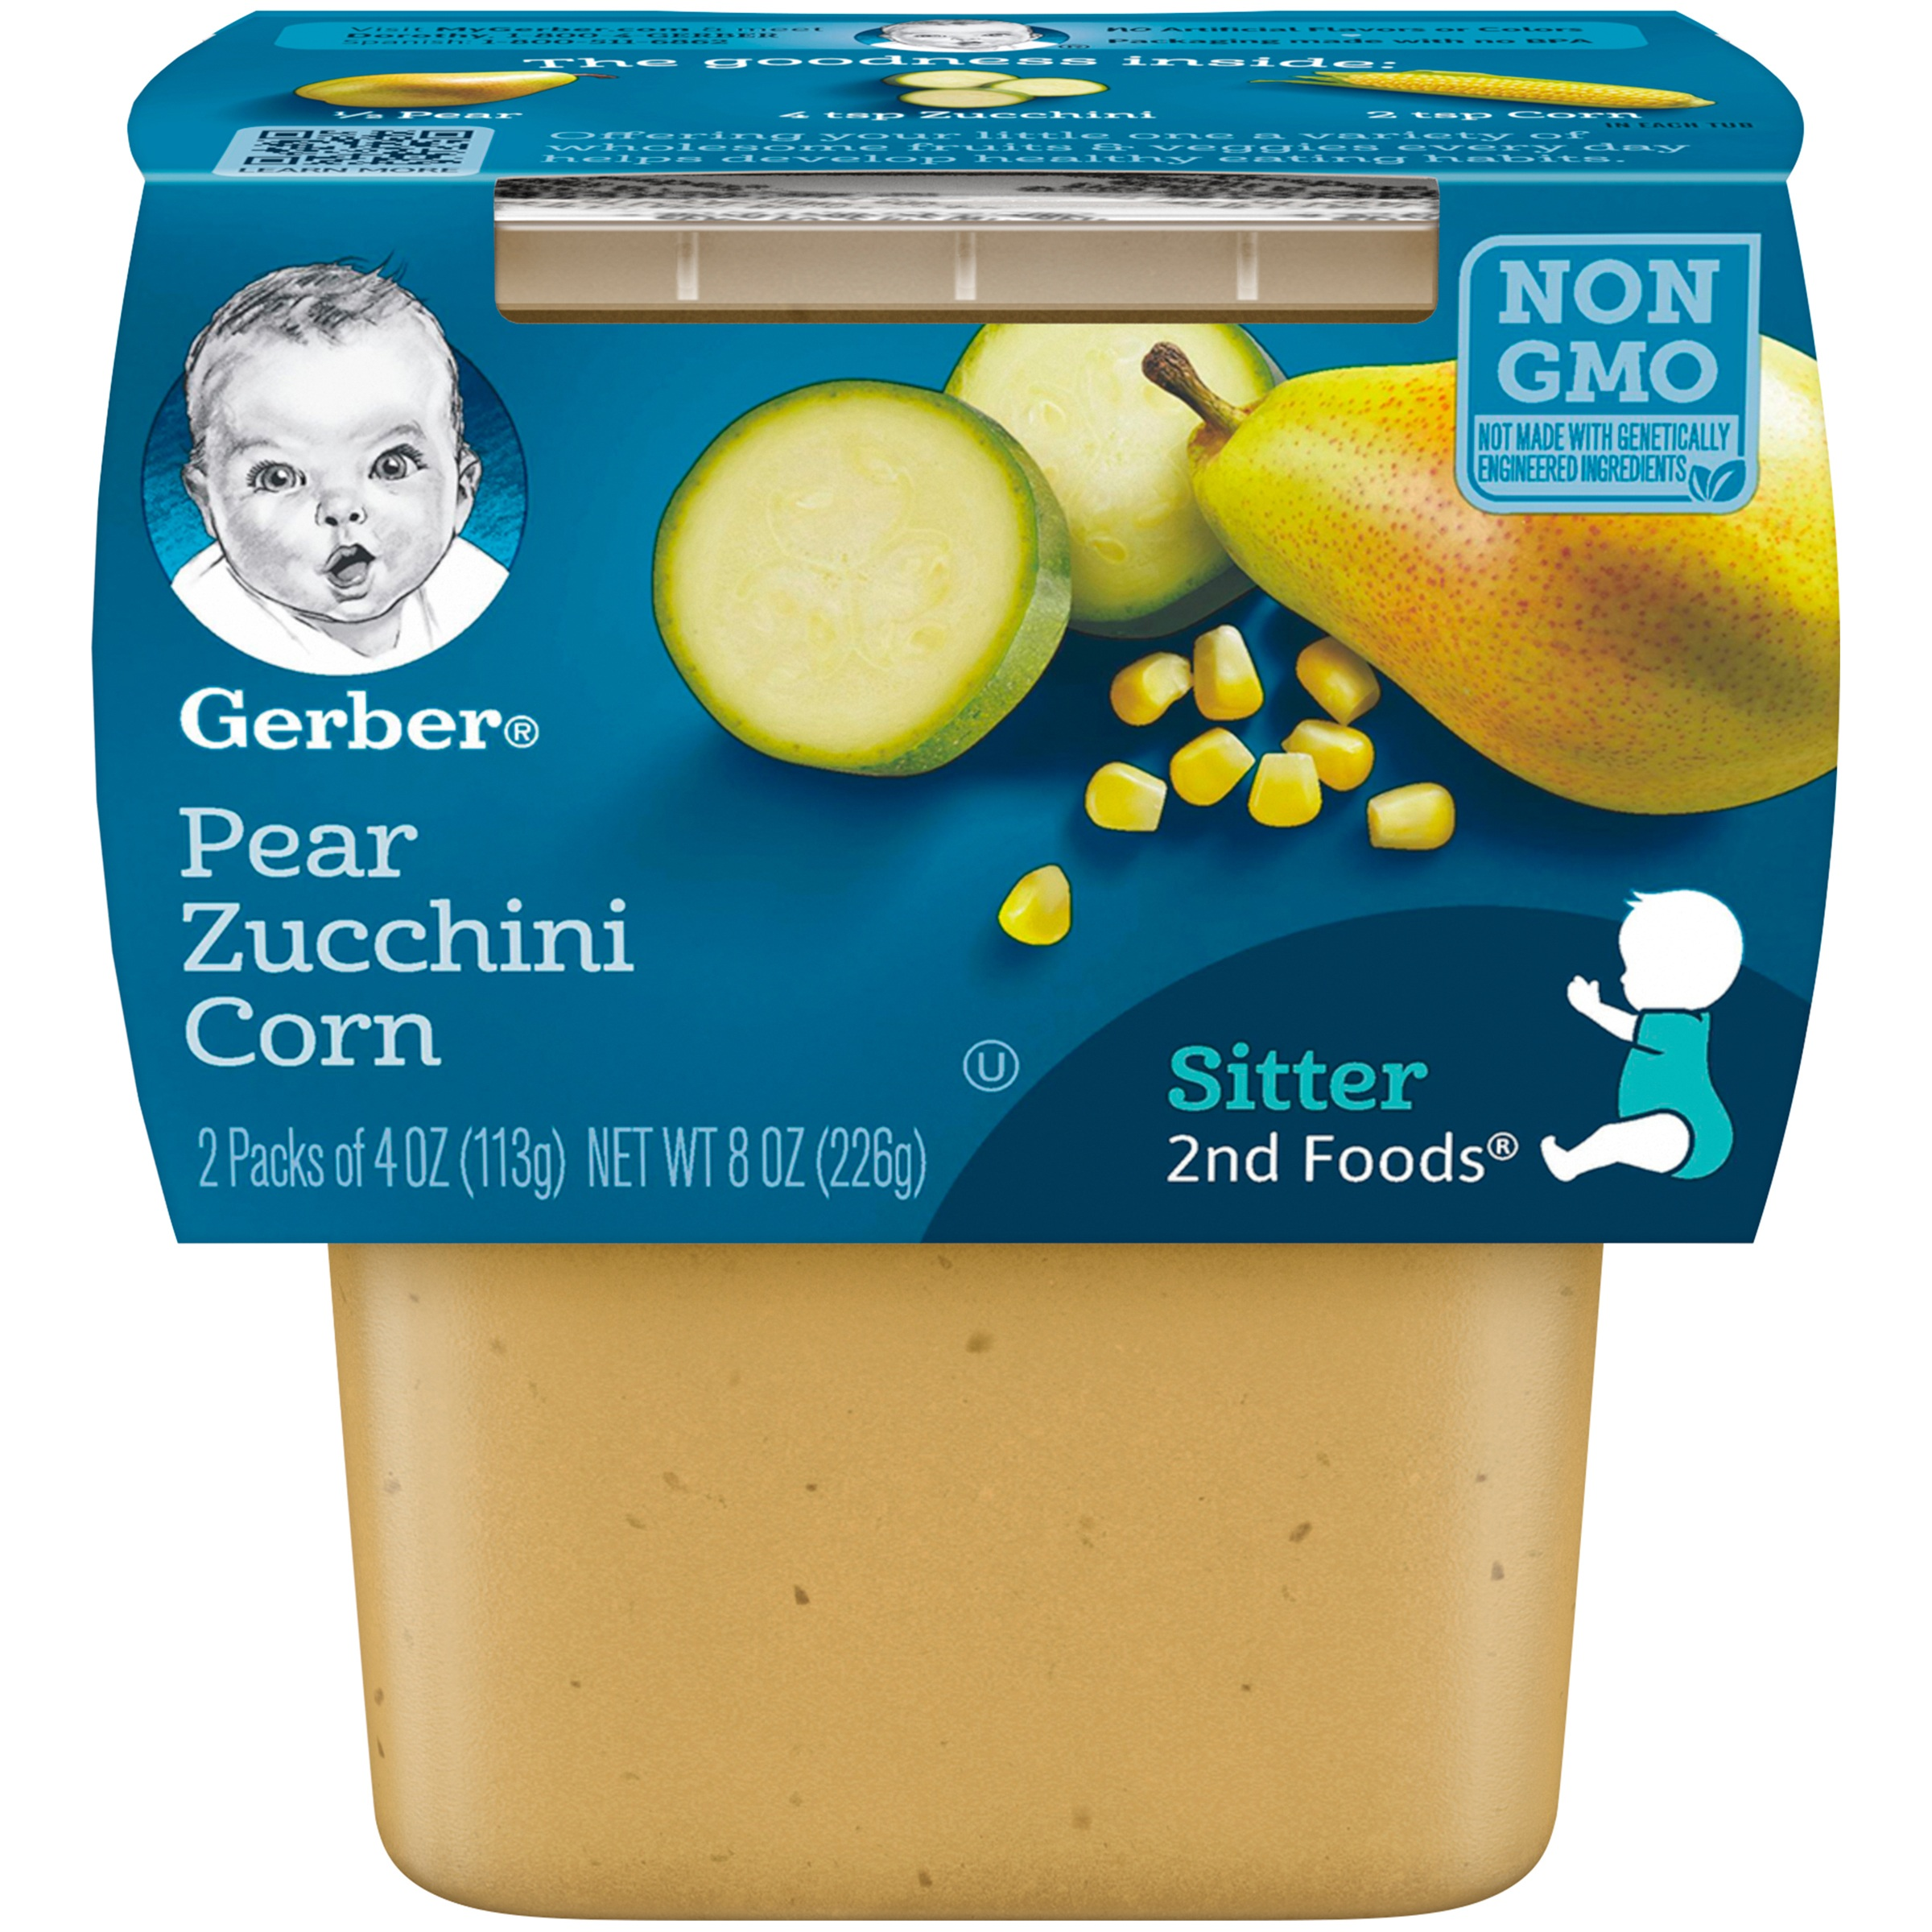 (8 Pack) Gerber 2nd Foods Pear Zucchini Corn Baby Food, 4 oz. Tubs, 2 Count